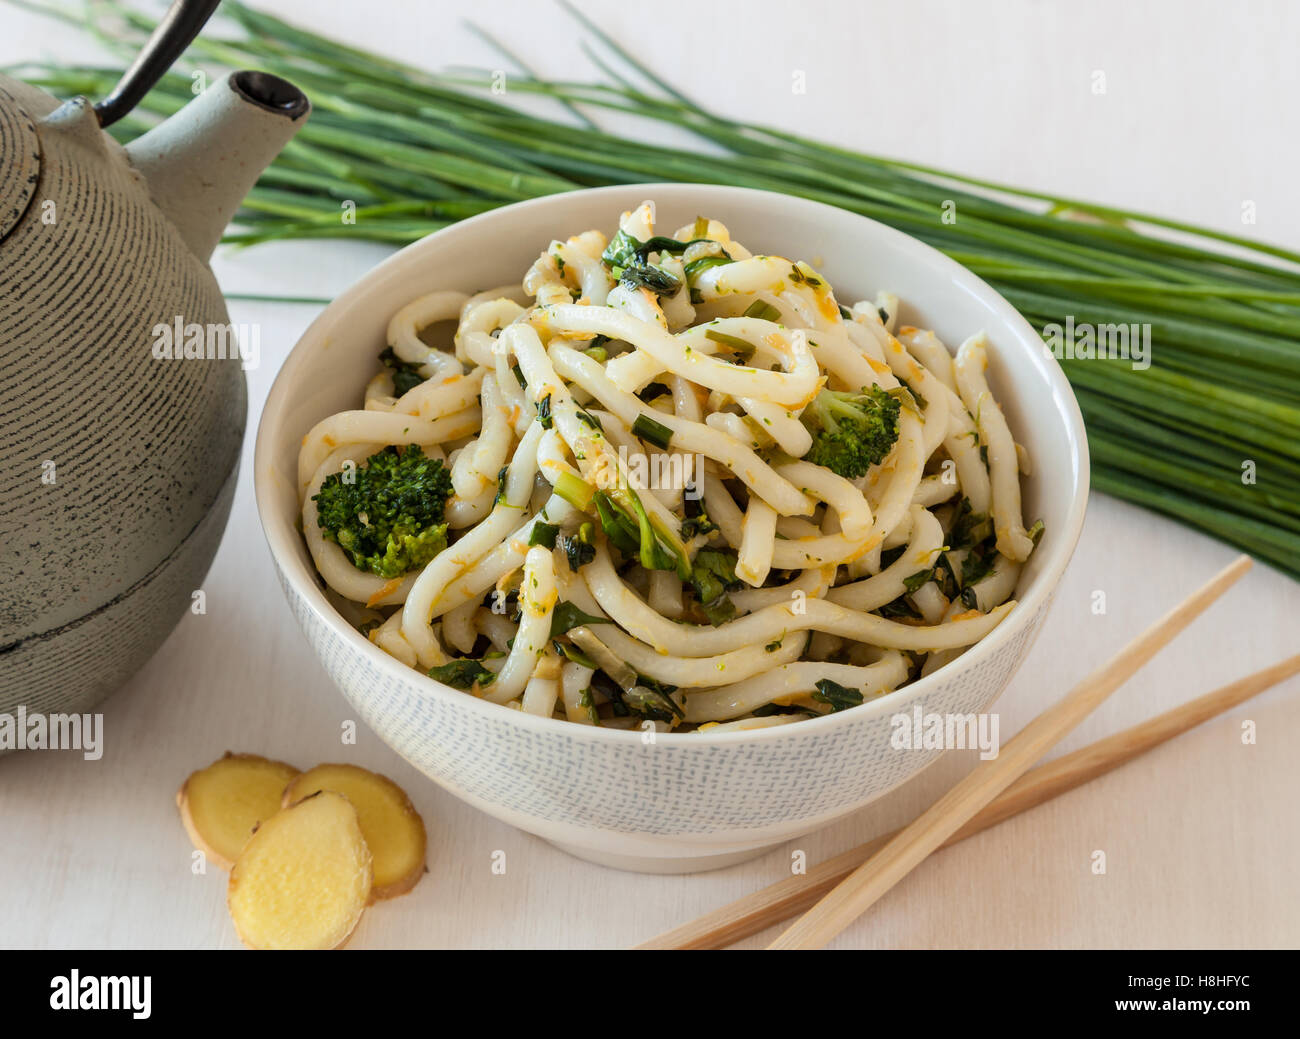 Japanese food. Udon noodles with broccoli and vegetables - Stock Image